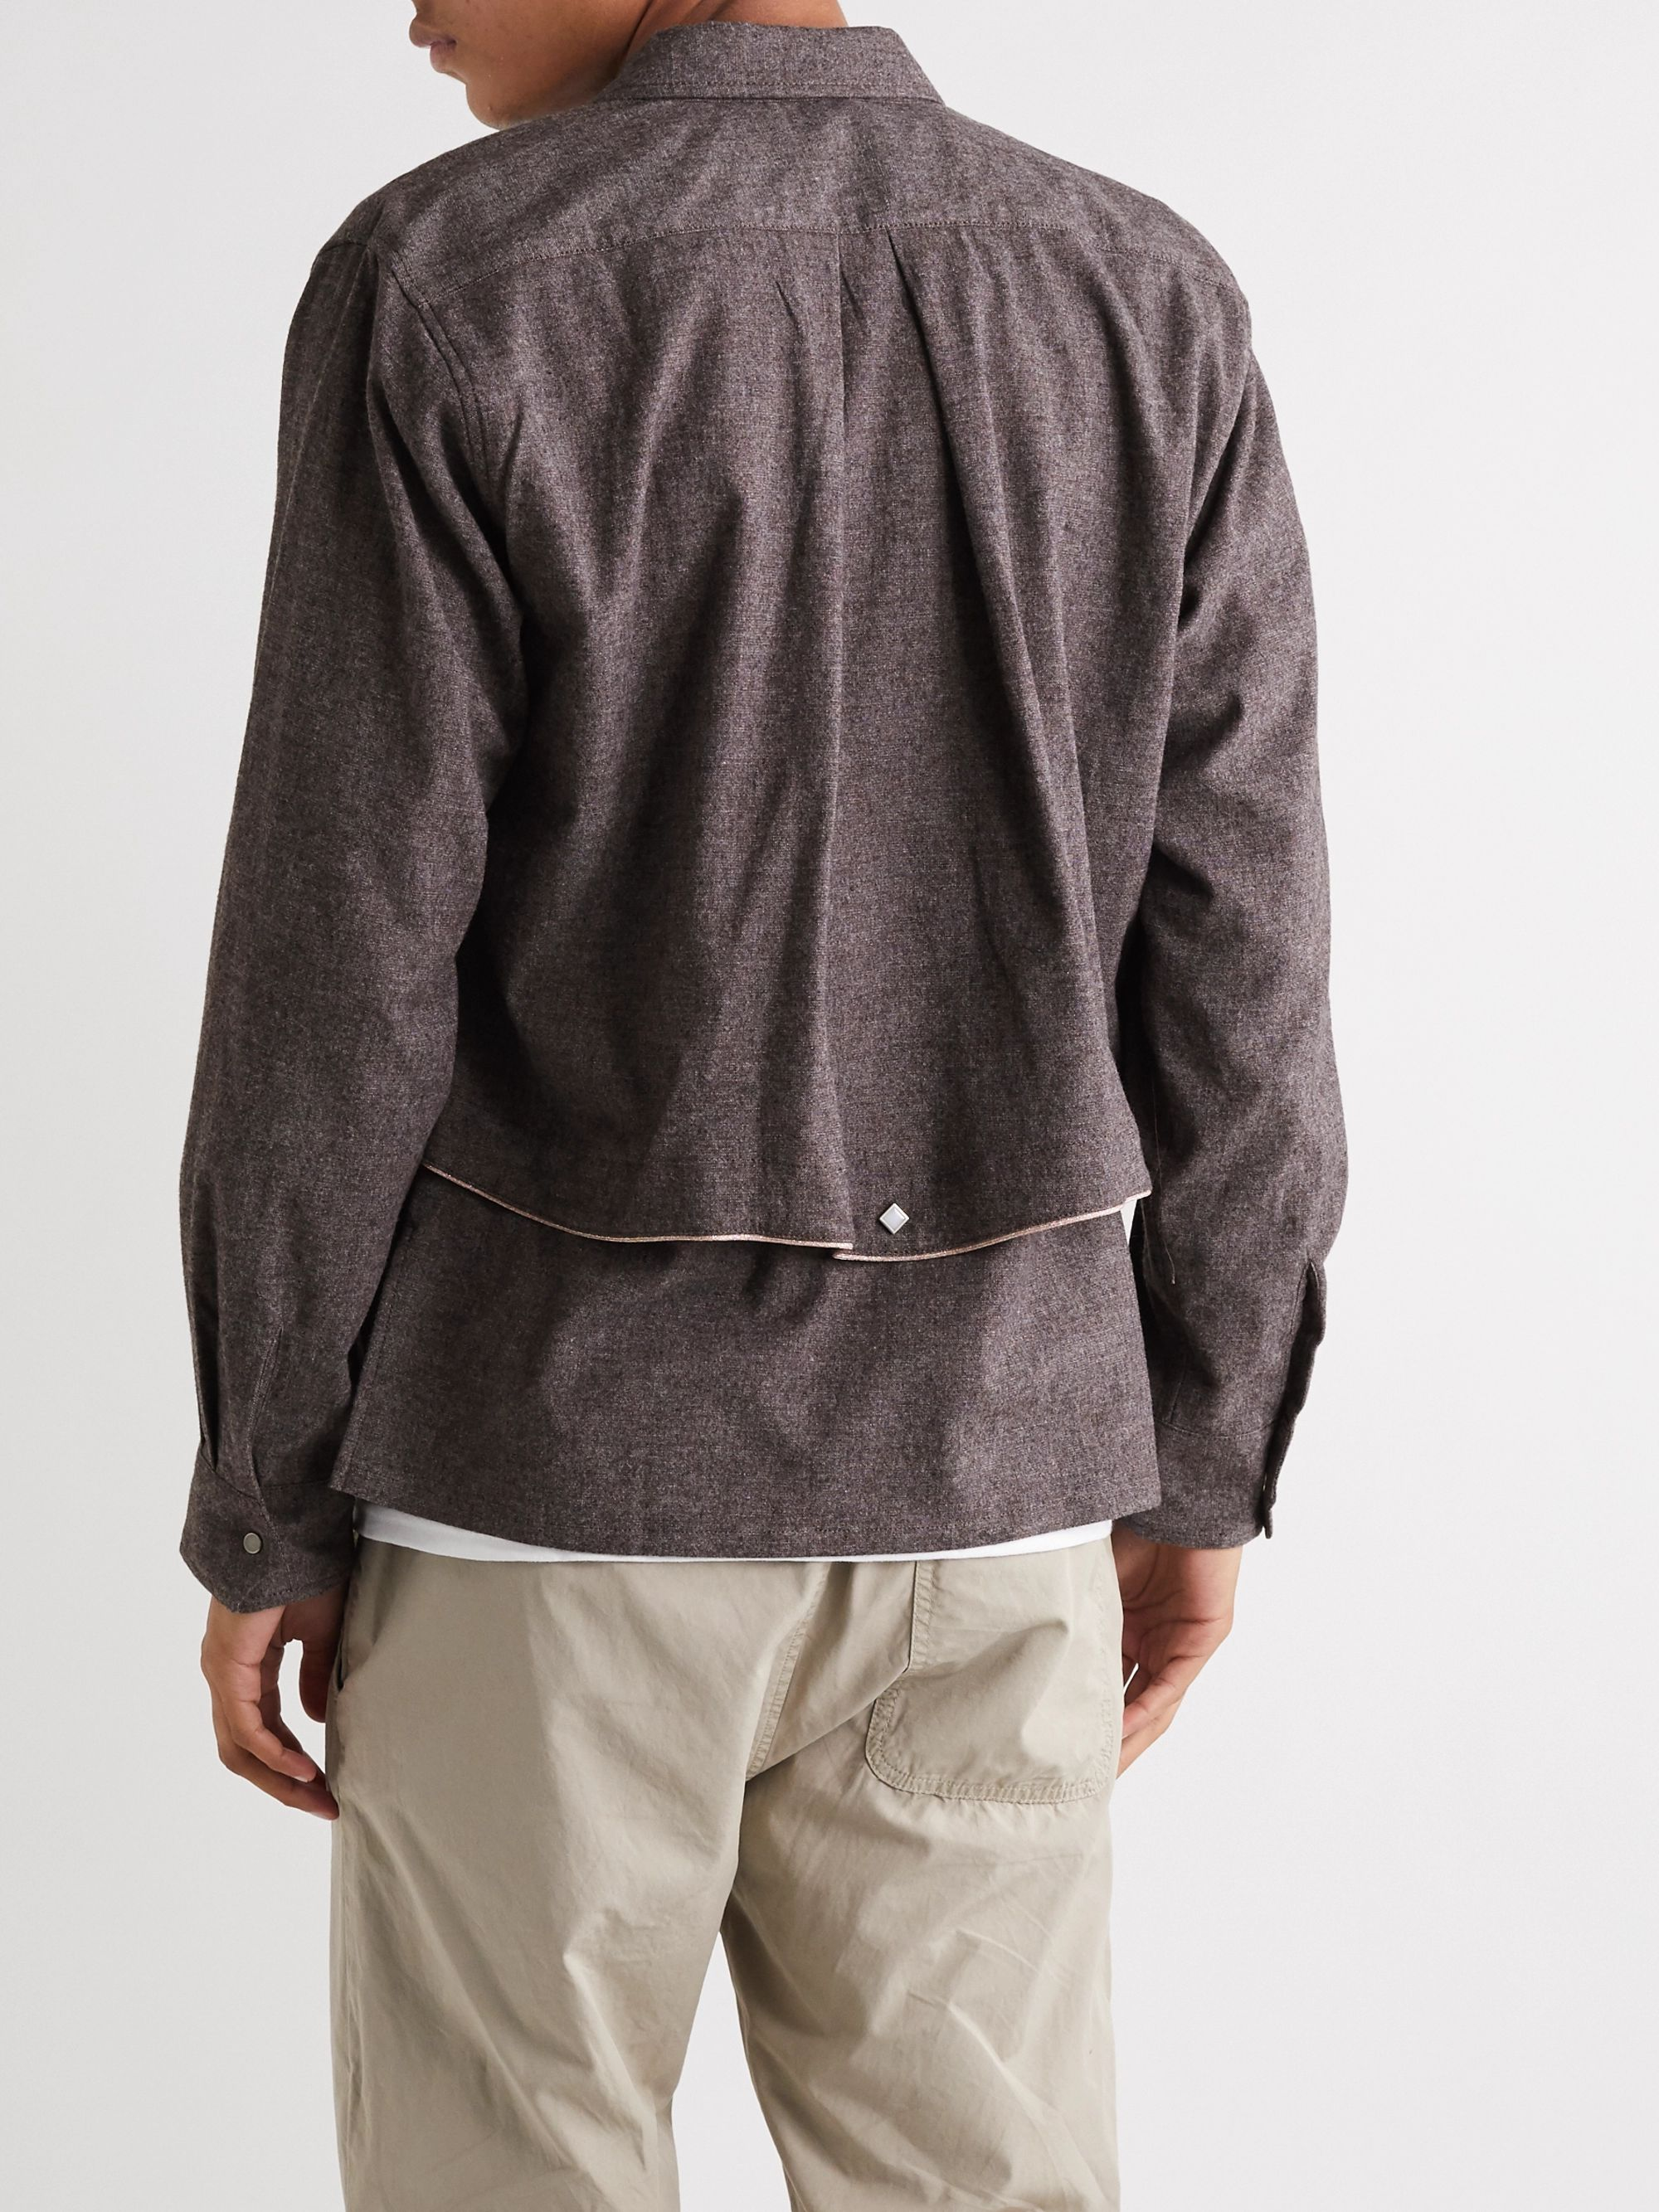 Sasquatchfabrix. Layered Woven Shirt